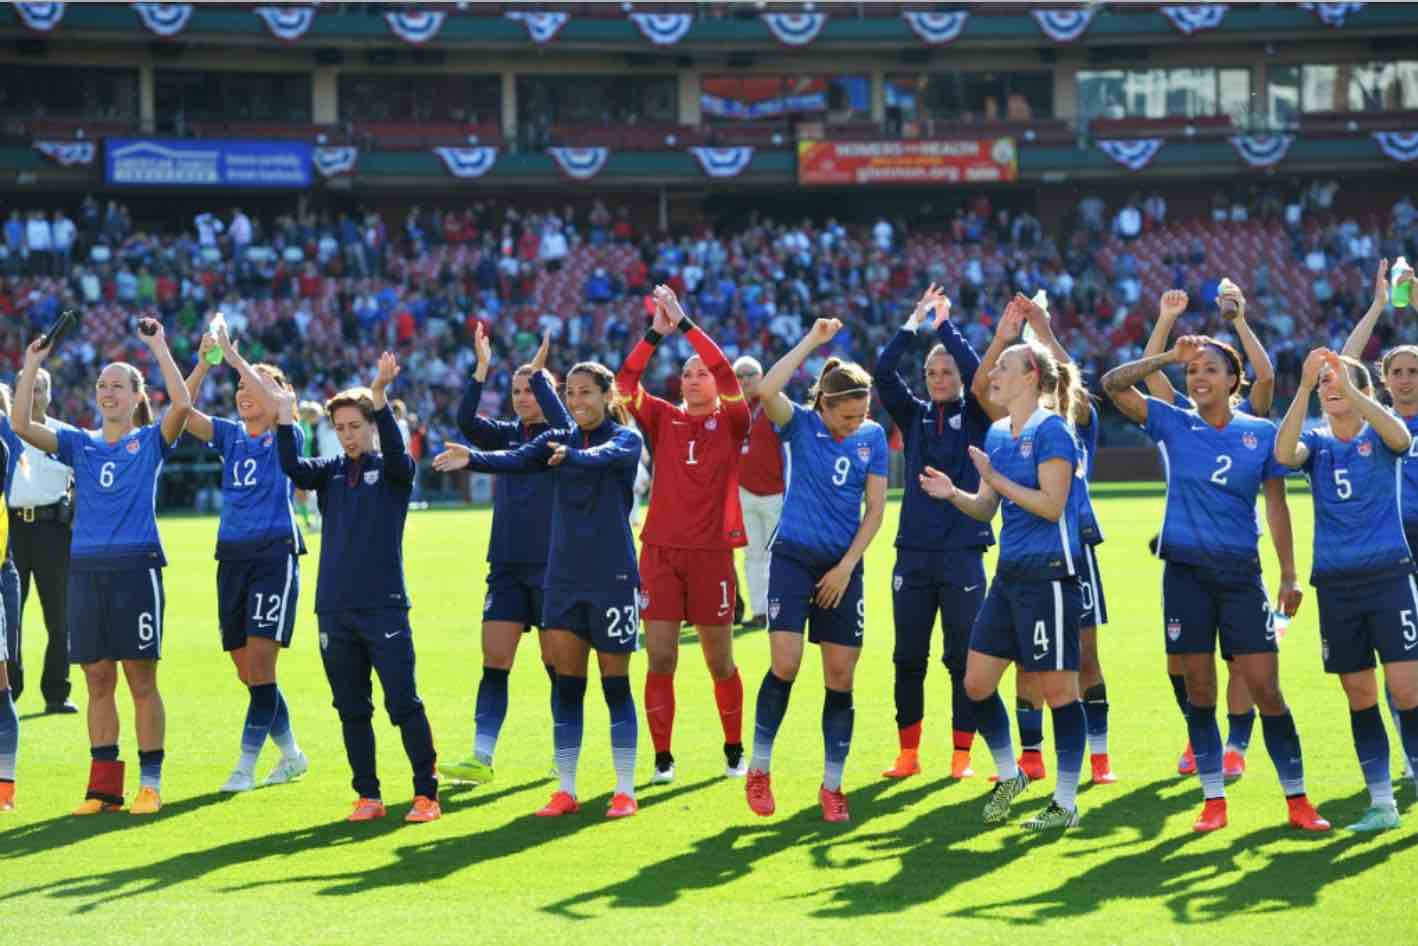 Over 35,000 tickets sold for USWNT friendly